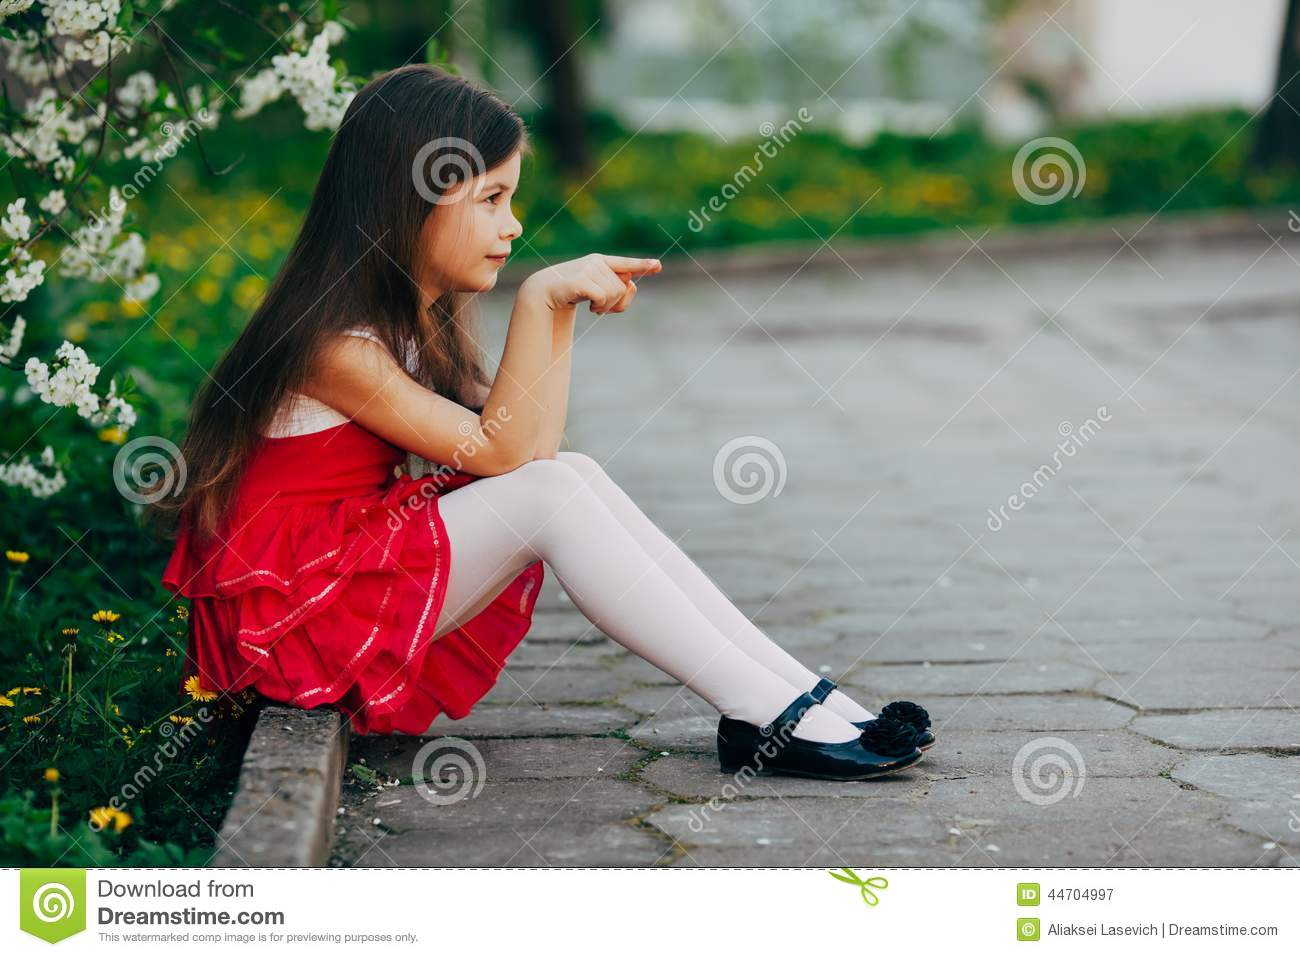 Sad Girl With Pigtails Under The Tree Stock Photo - Image: 67457561